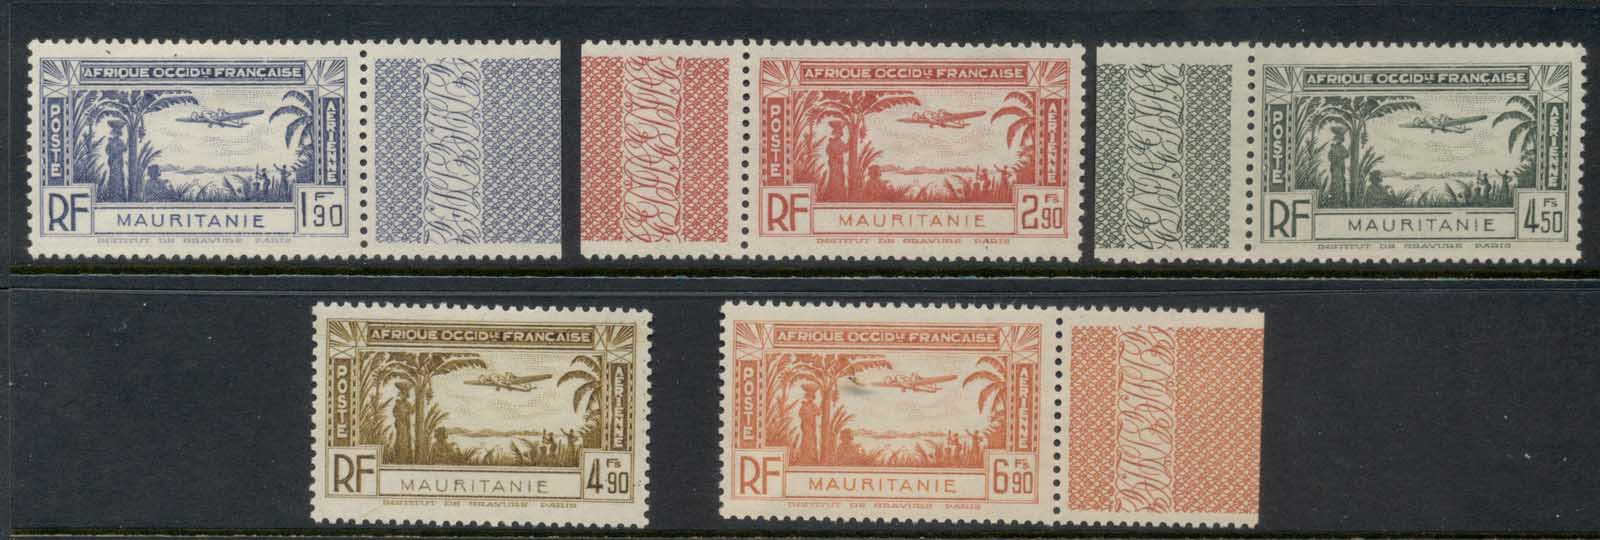 Mauritania 1940 Air Mail MLH